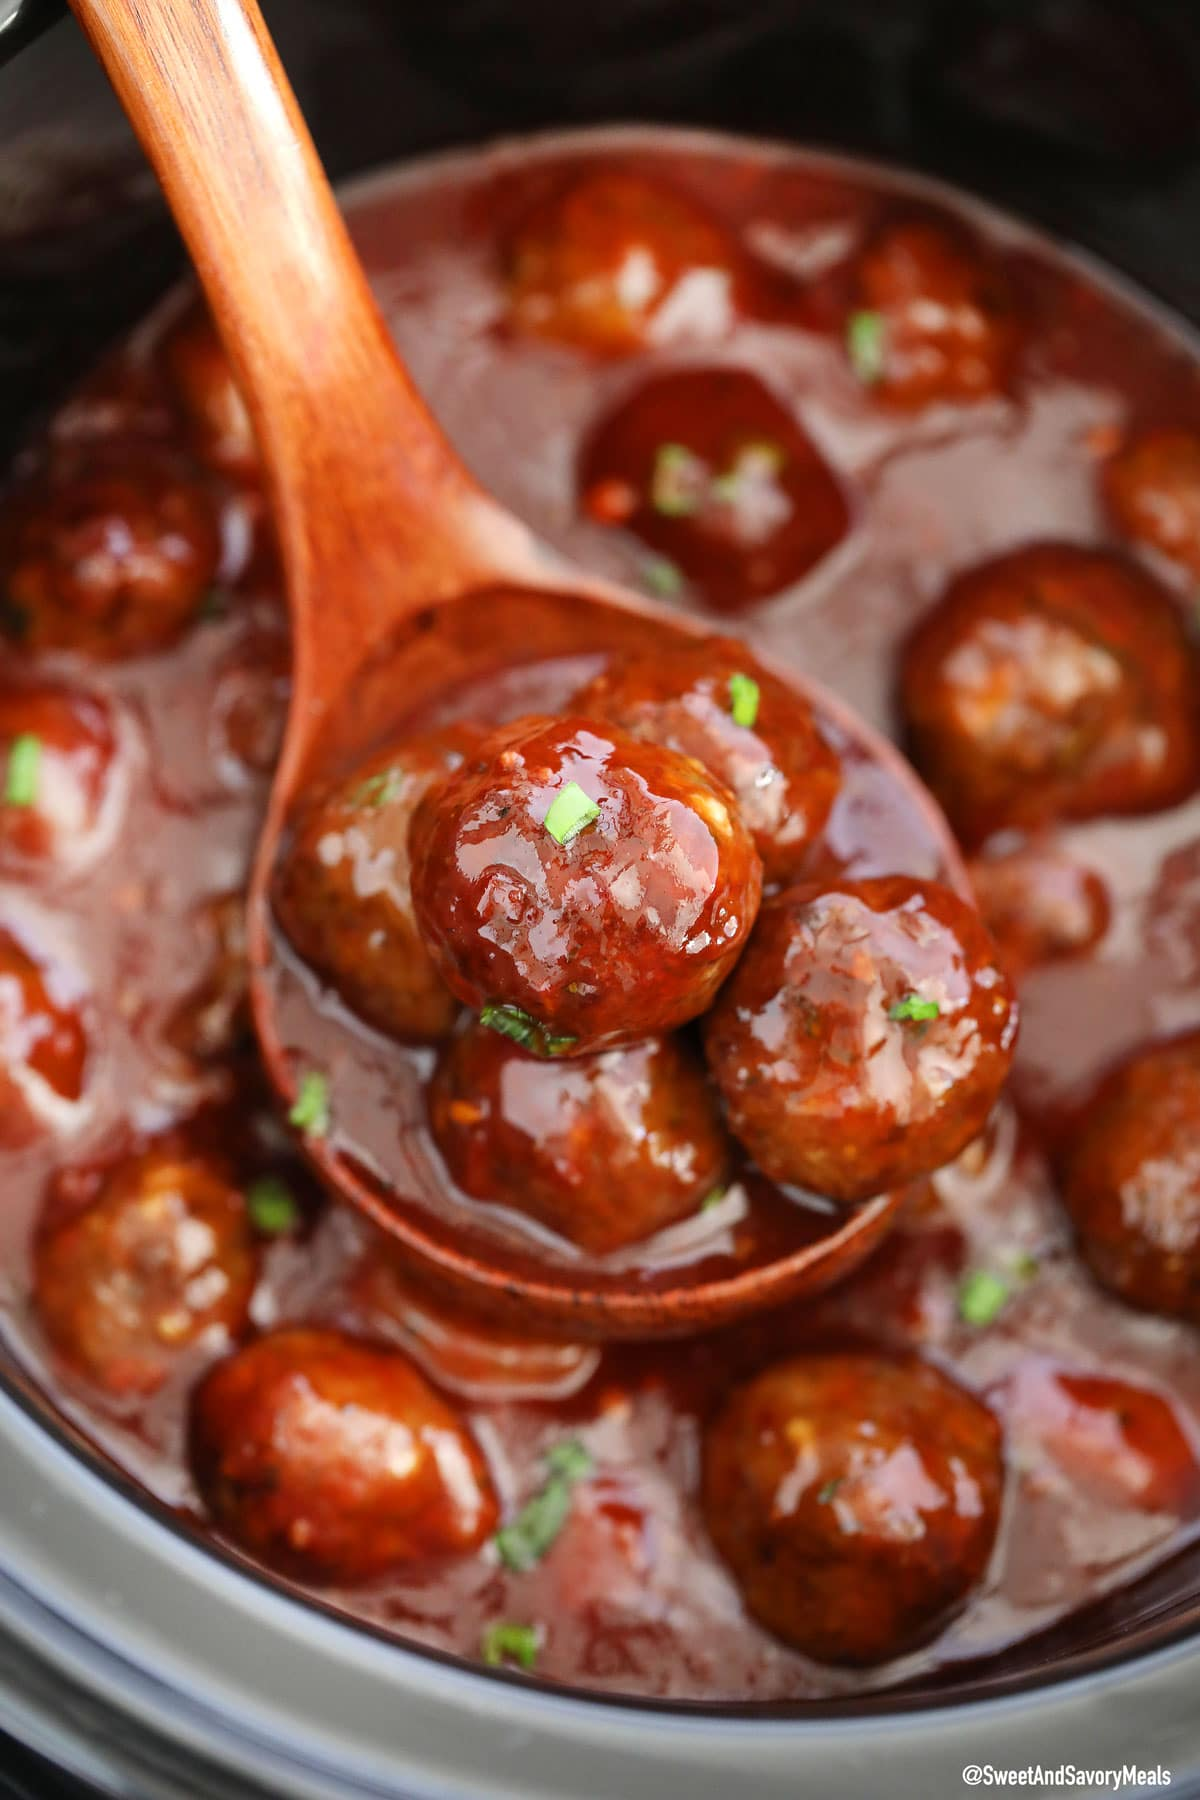 Best Bbq Crockpot Meatballs Easy Slow Cooker Recipe Sweet And Savory Meals